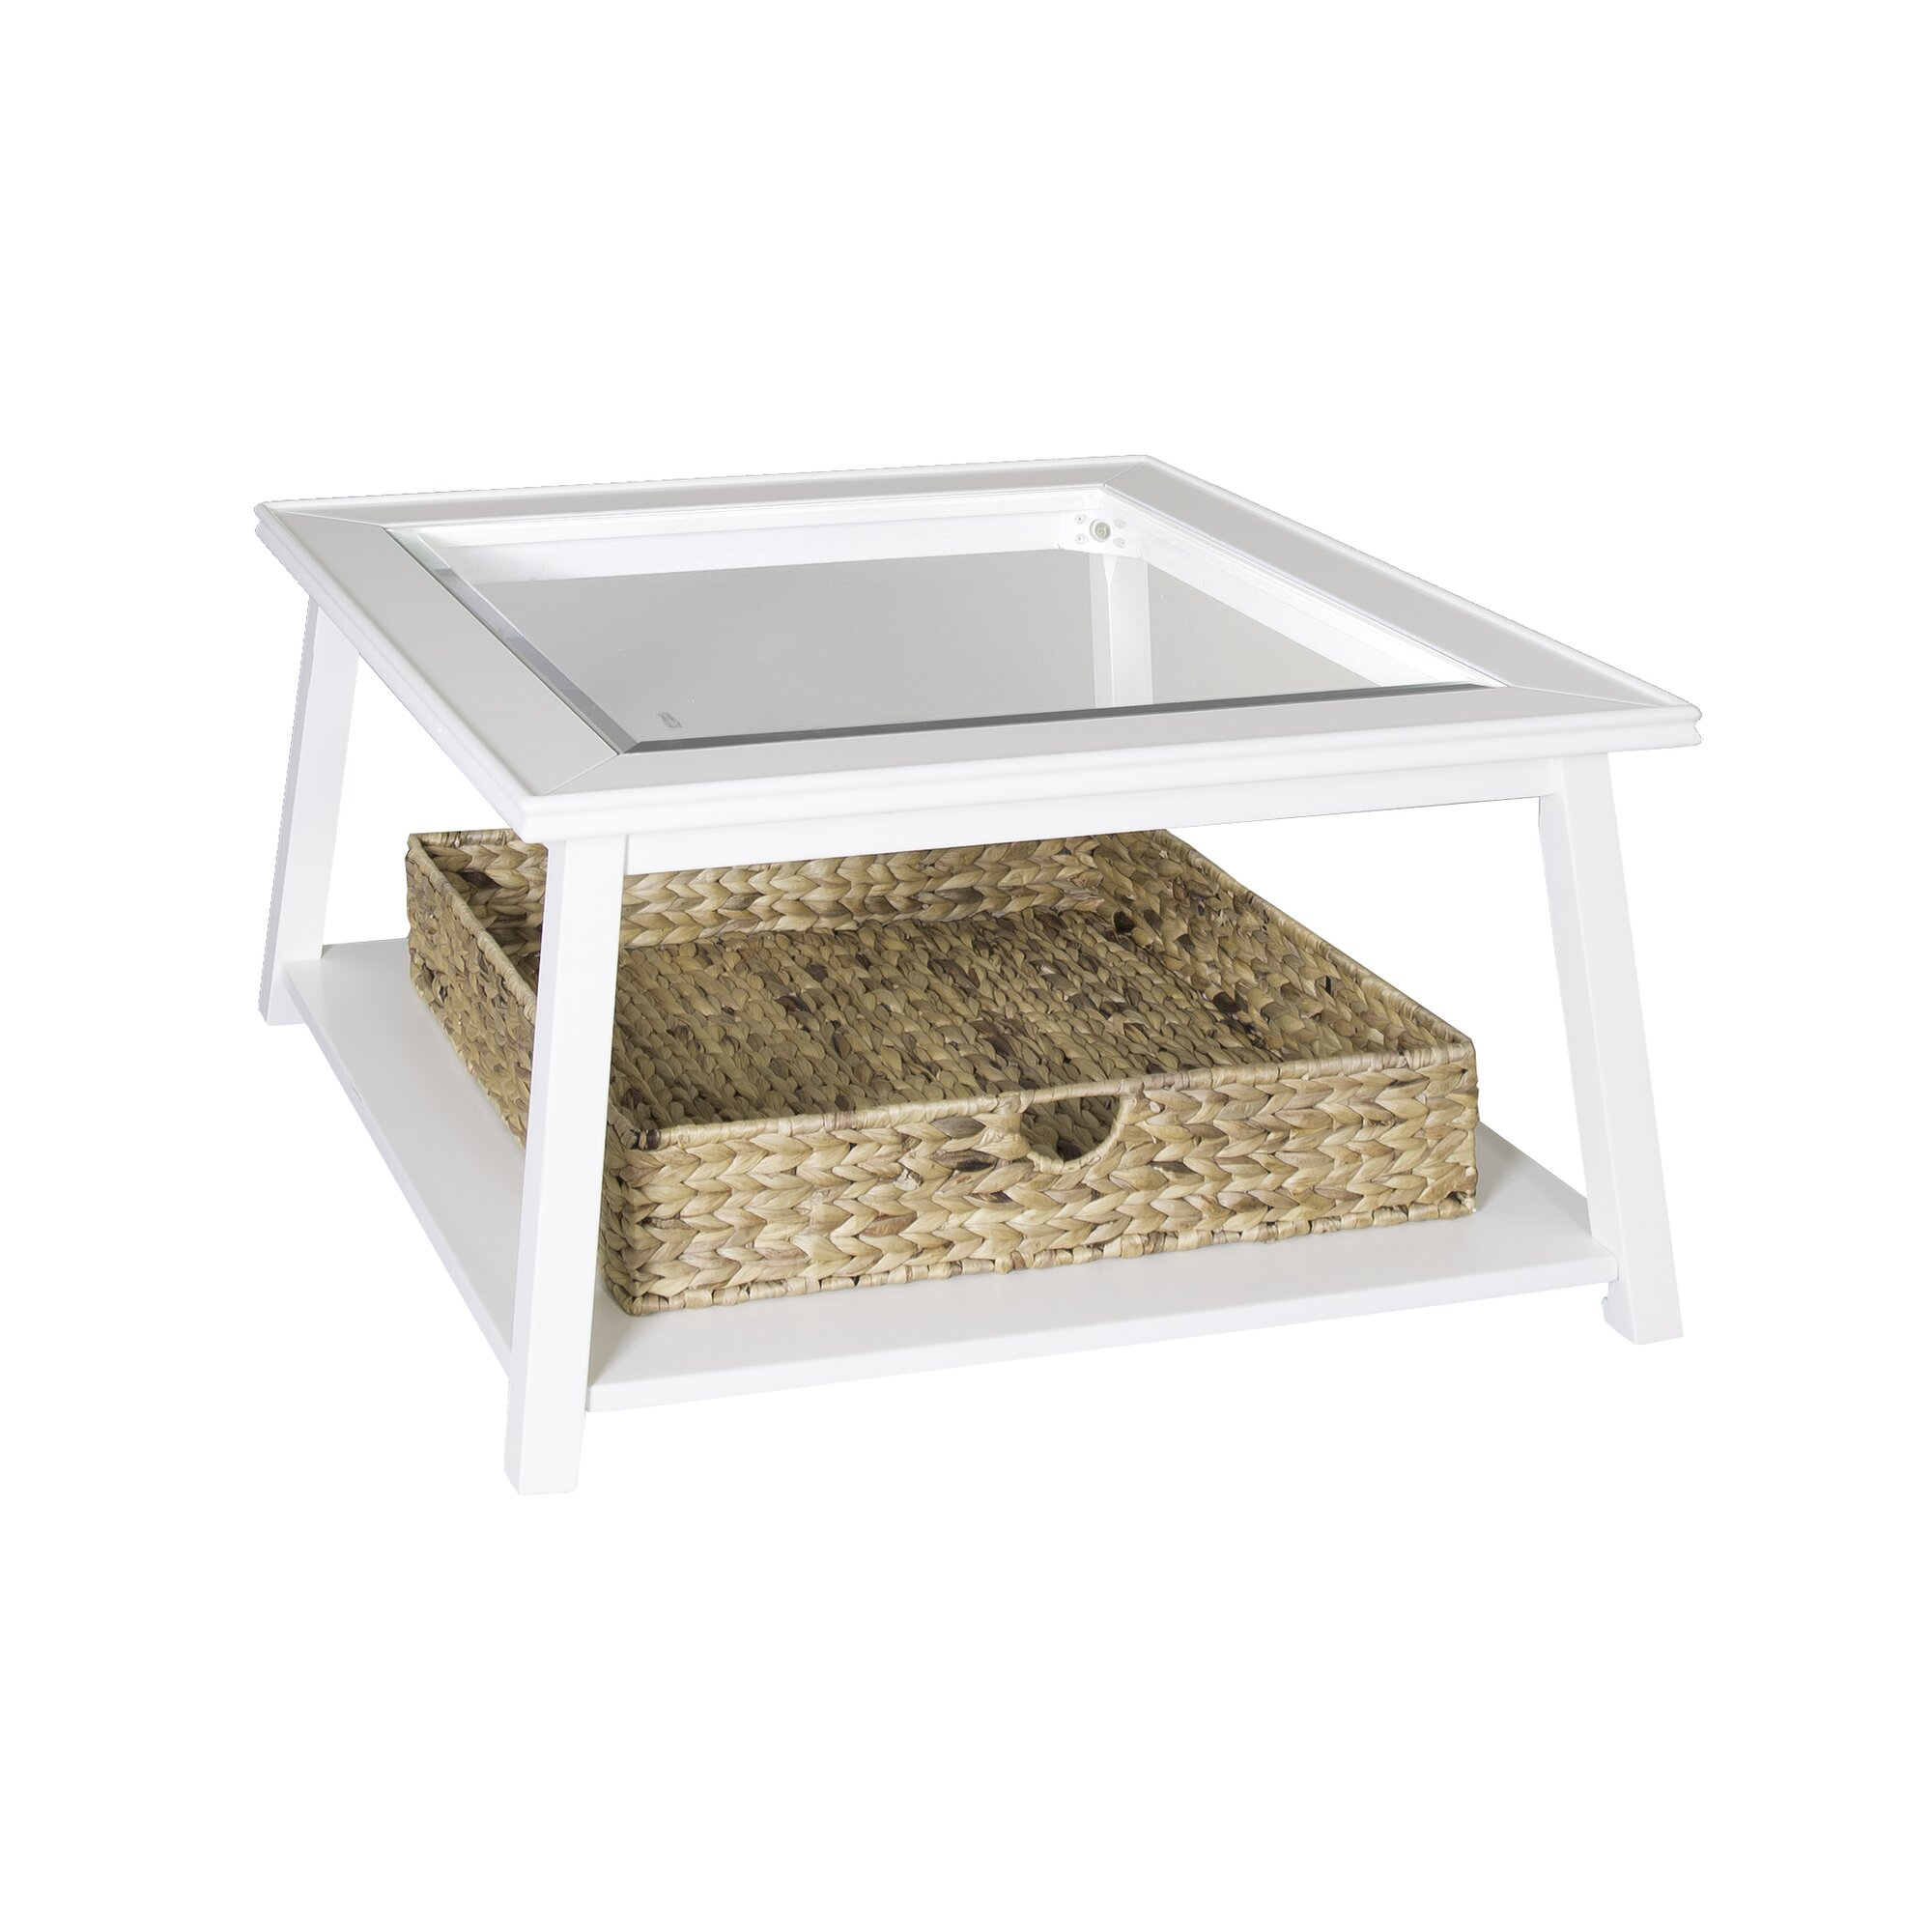 Tori Coffee Table In Linen Reviews Joss Main